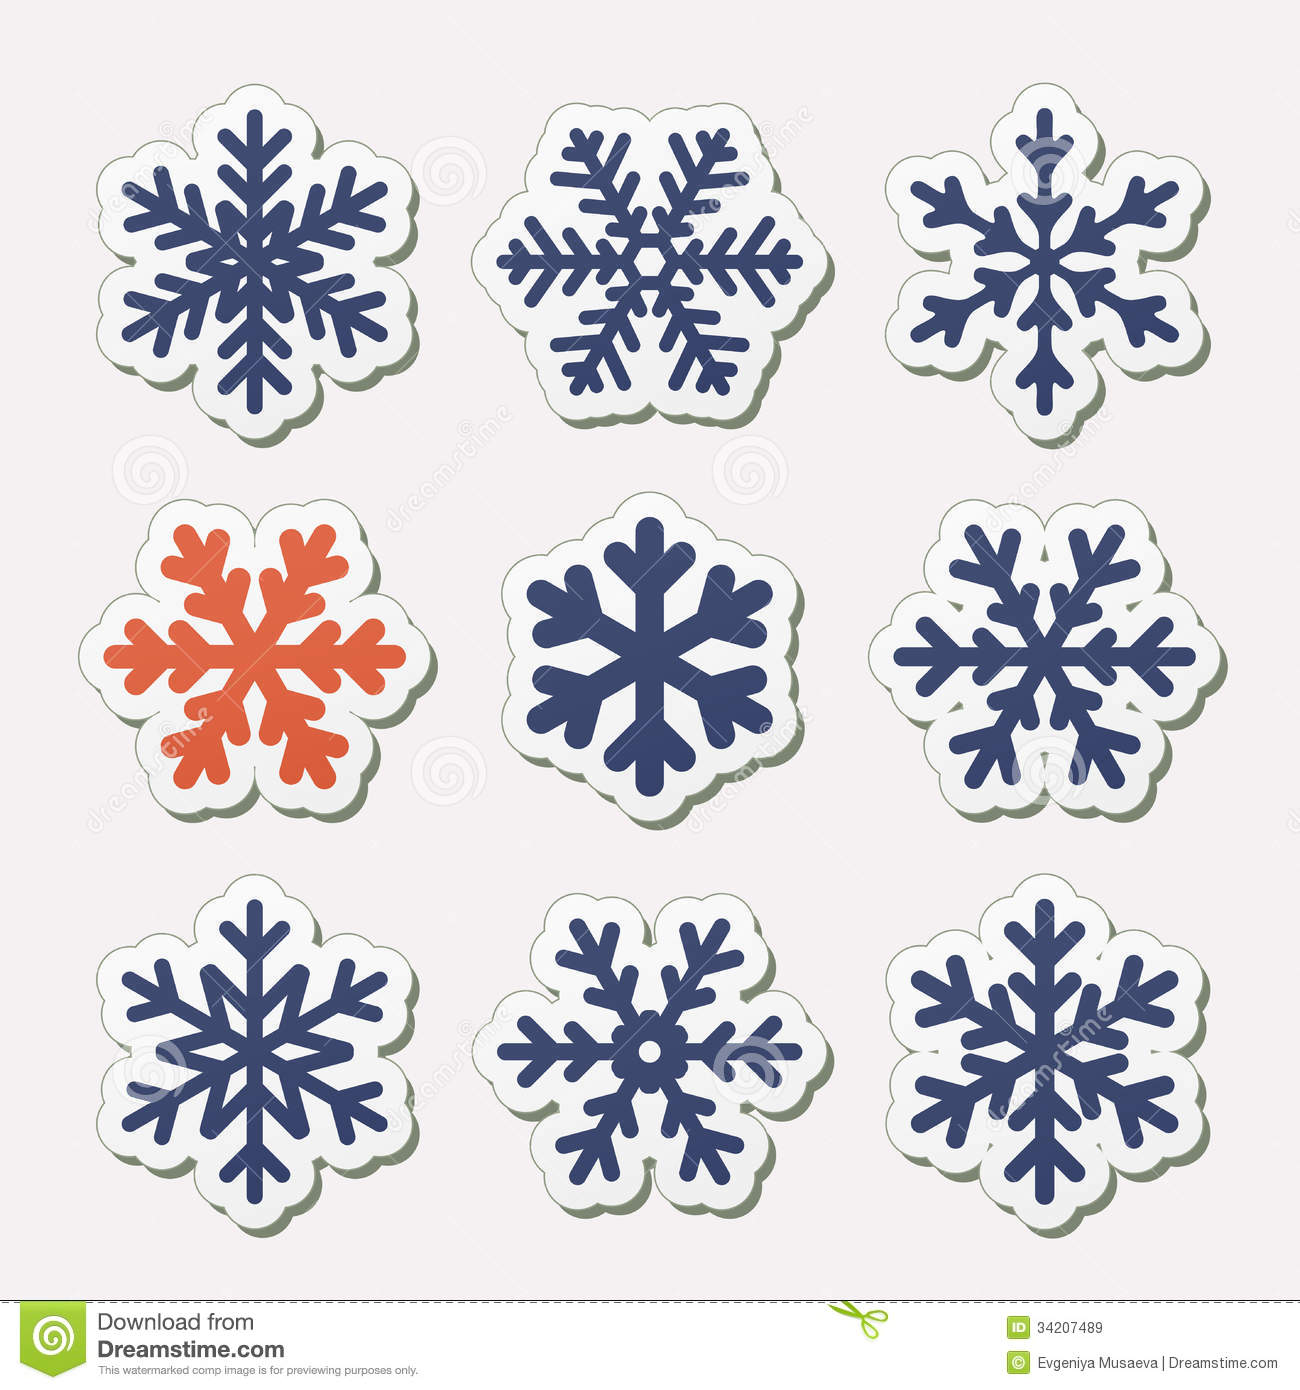 Simple Snowflake Shape Vector set of snowflakes.